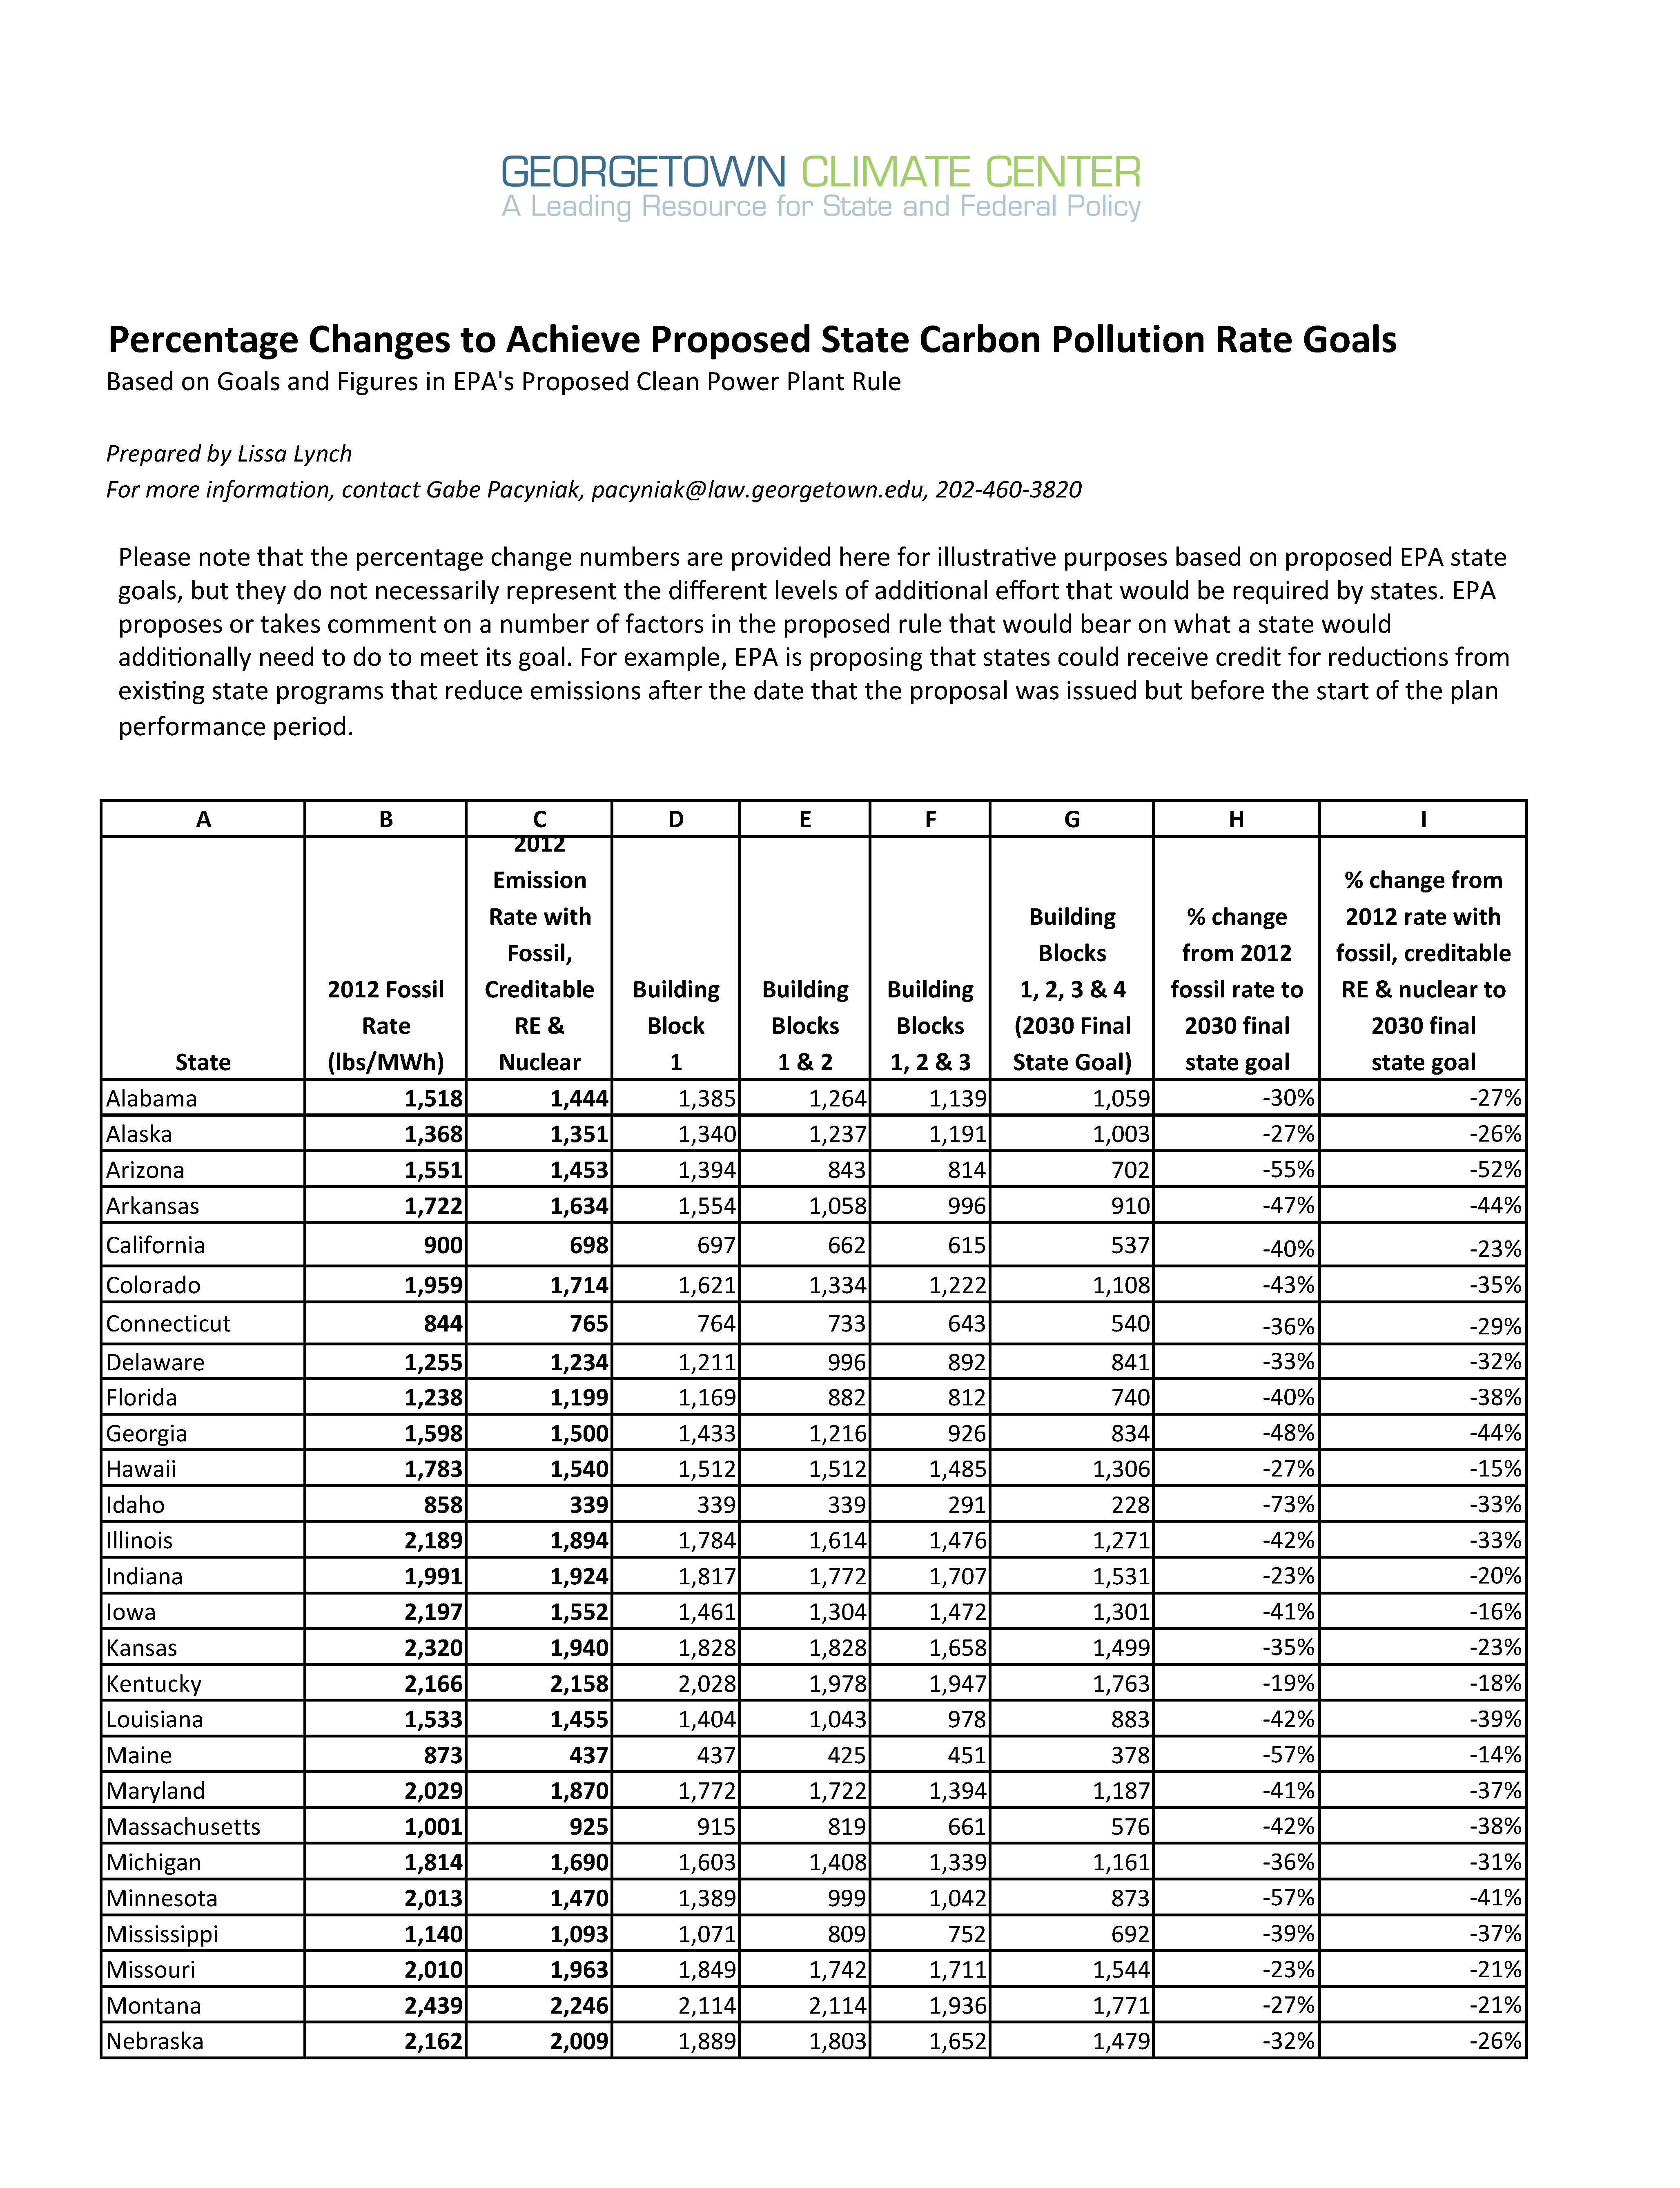 Percent Changes Needed to Acheive EPA's State-by-State Carbon Pollution Goals